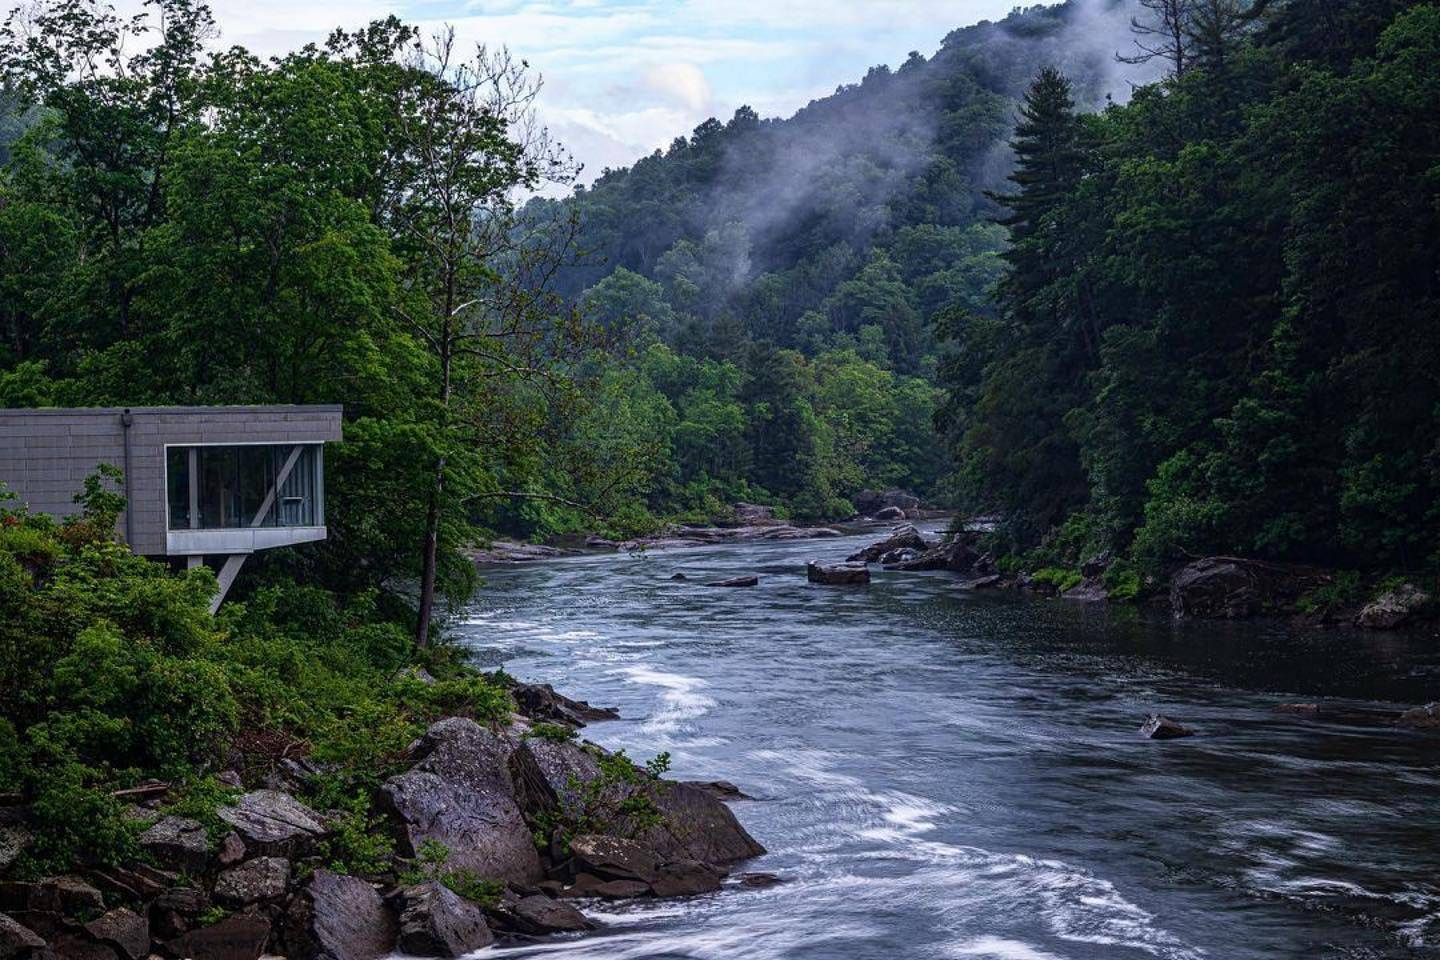 The Youghiogheny River and visitor center in Ohioplye State Park